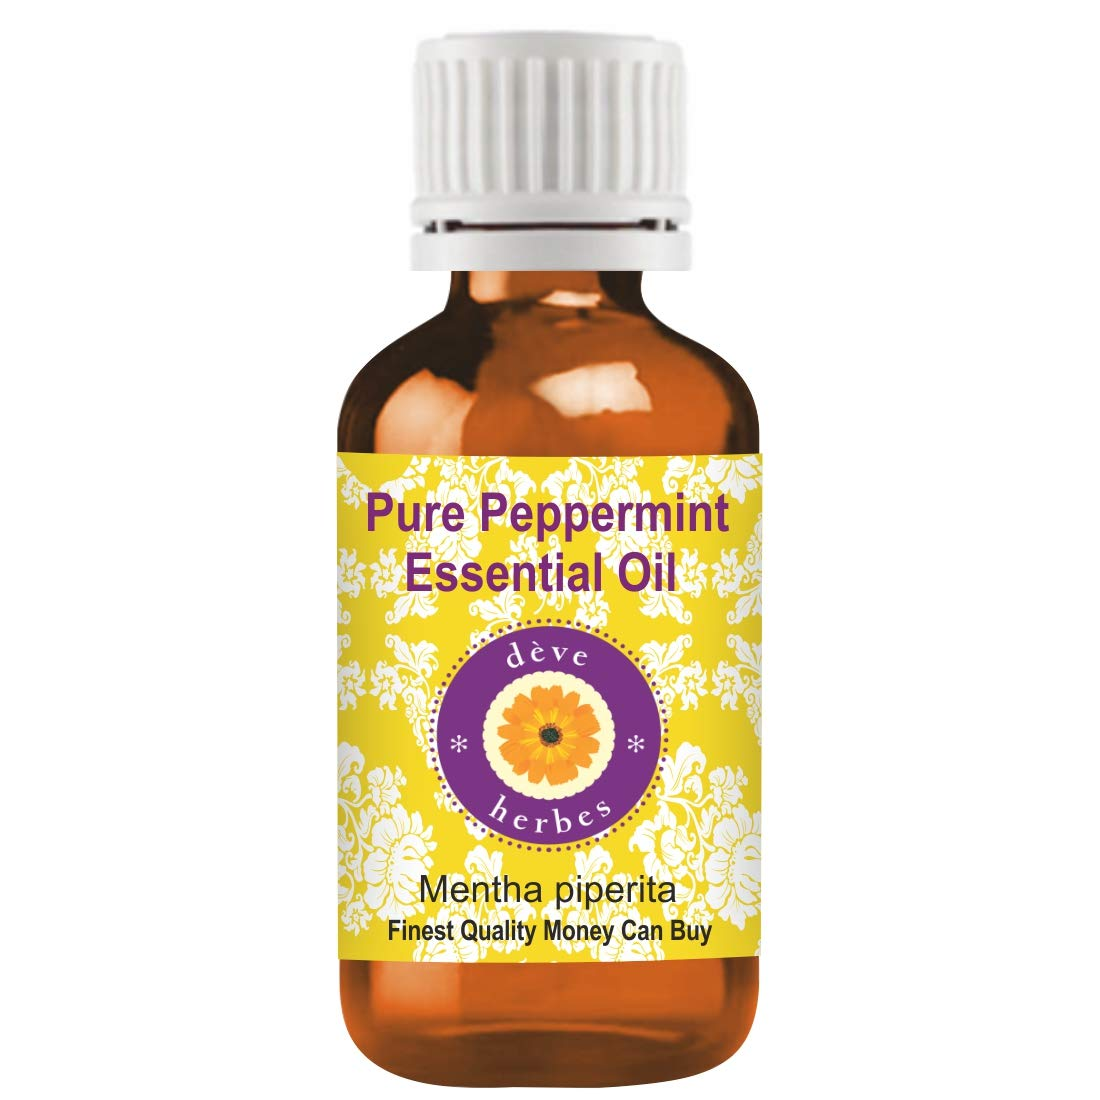 Deve Herbes Pure Peppermint Essential Oil (Mentha piperita) 100% Natural for Aromatherapy, Relaxation, Skin, Hair and Massage Therapeutic Grade Steam Distilled 50ml